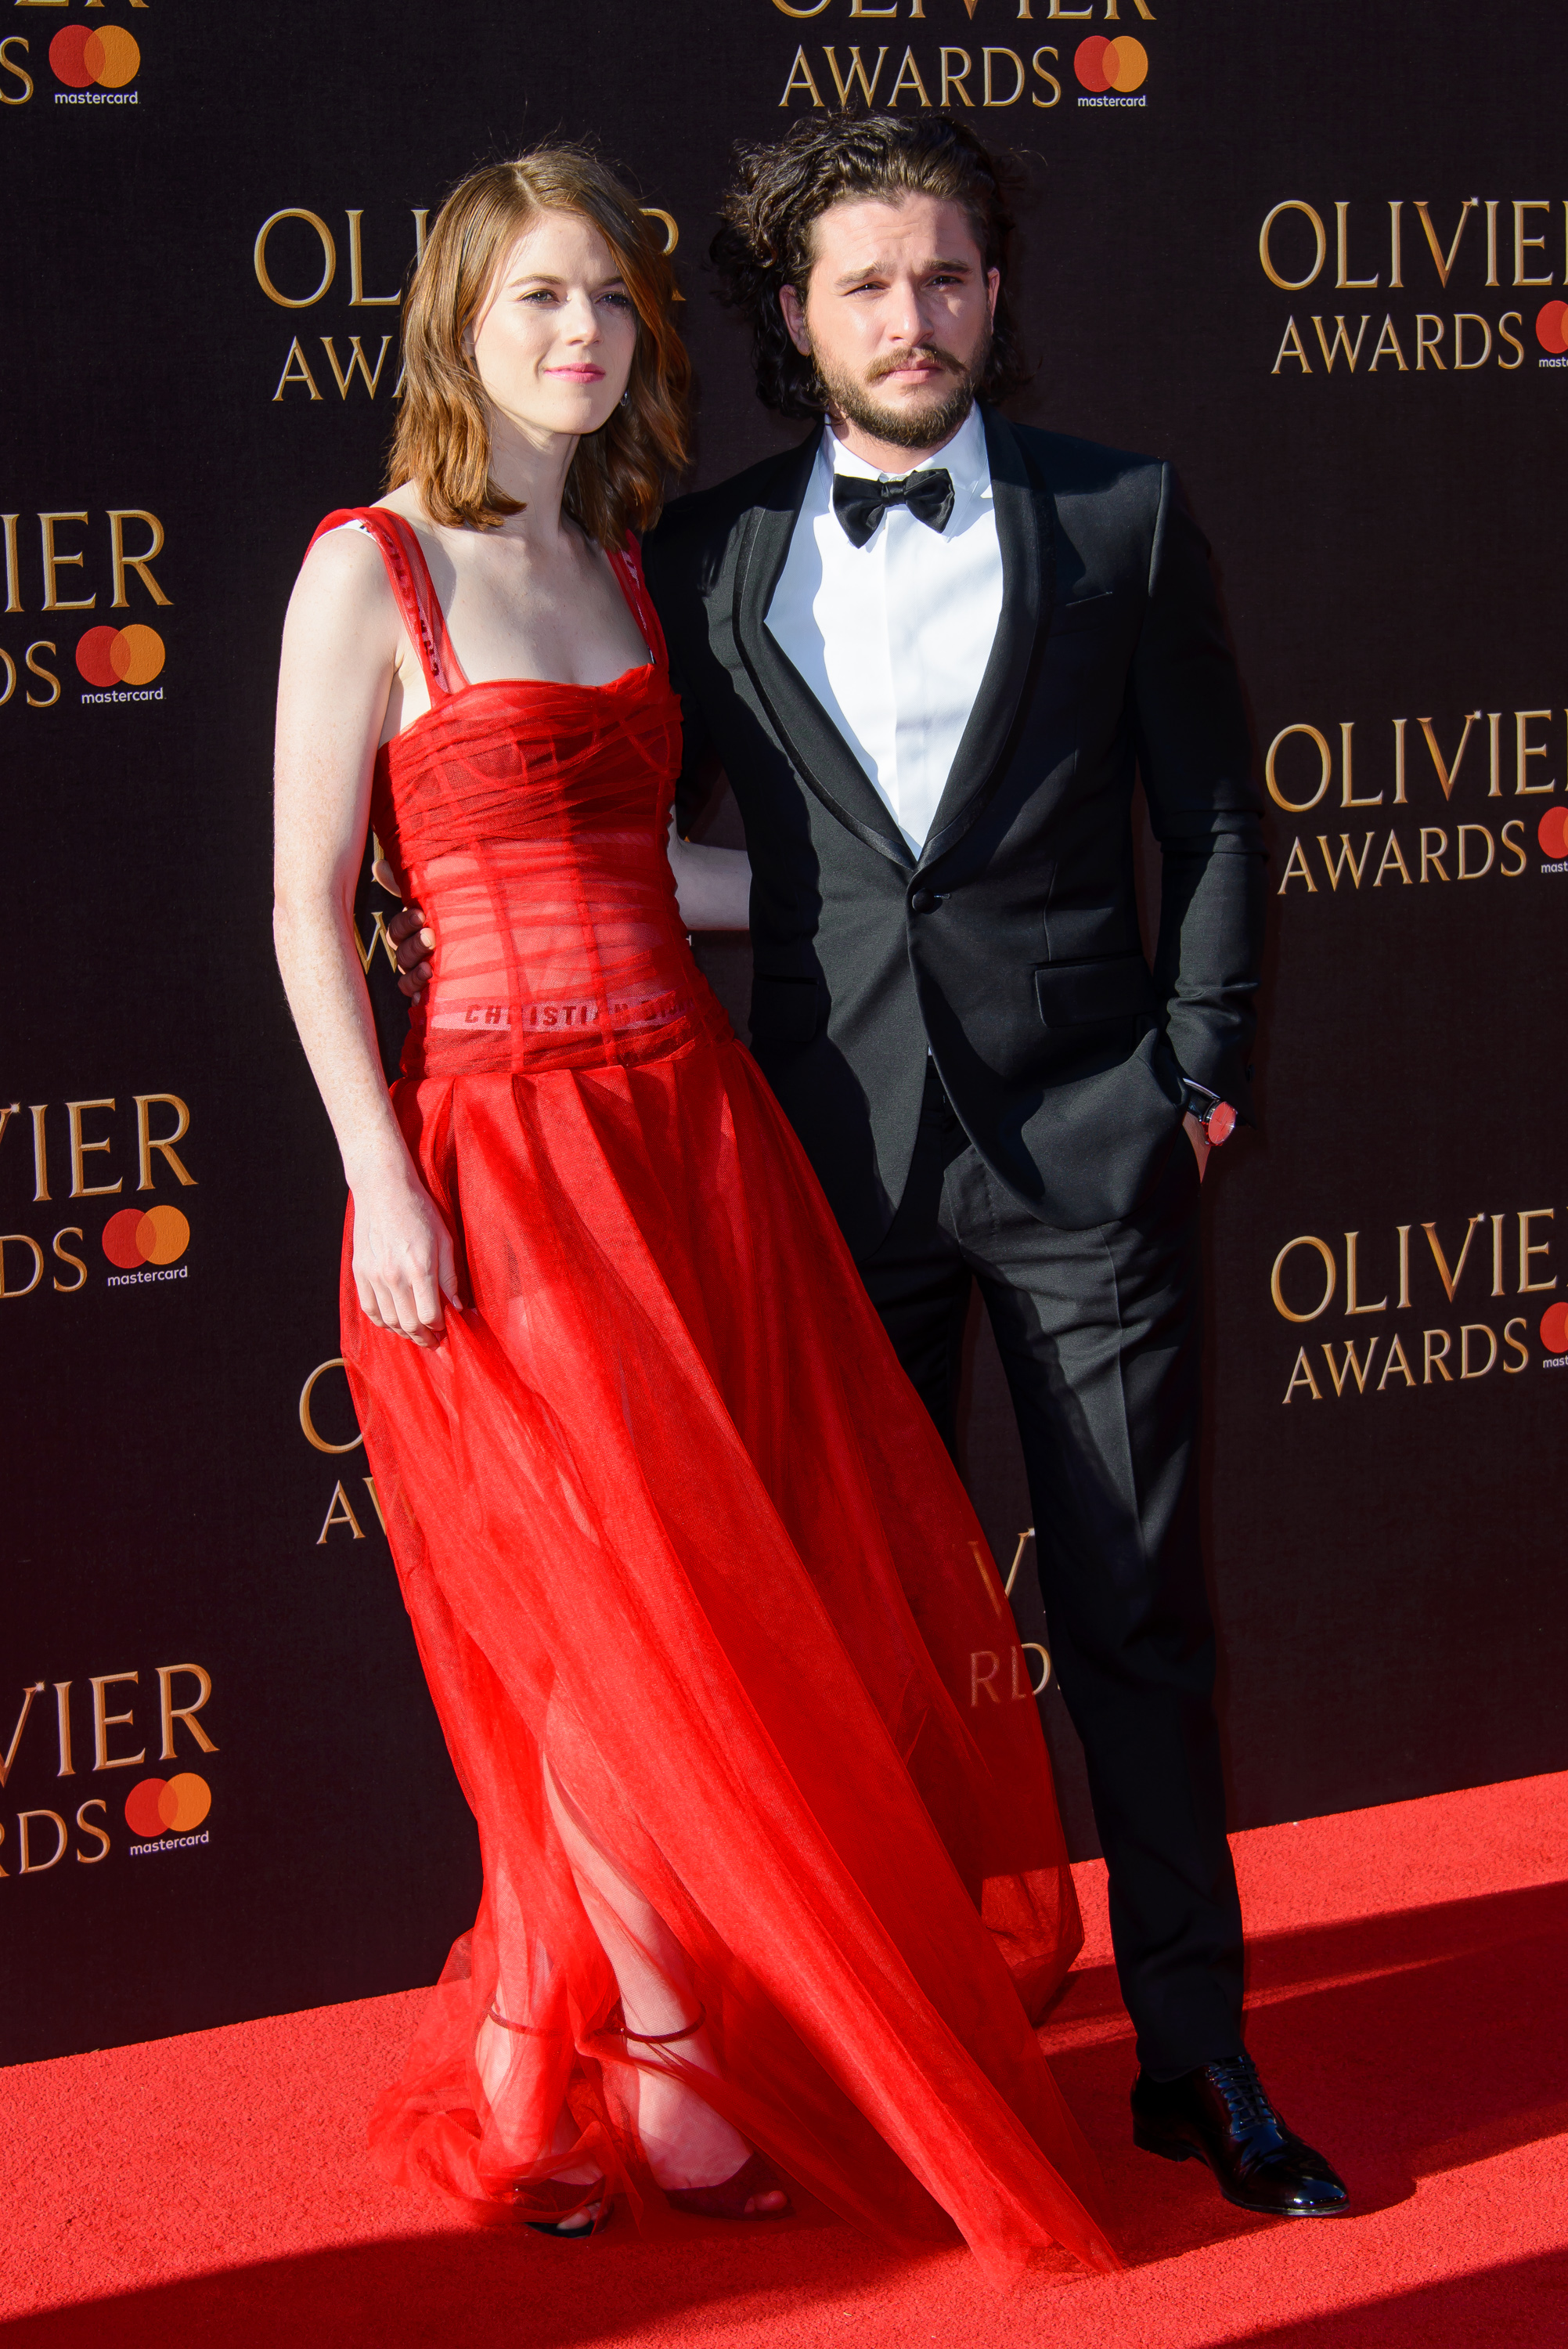 "<p>Their love may have been doomed on <em>Game Of Thrones</em> but Kit Harington,<a href=""http://style.nine.com.au/2017/02/22/11/07/beauty-campaigns-celebrity-model-actress-star-angelina-jolie-selena-gomez"" target=""_blank"" draggable=""false""> face of Dolce & Gabbana</a> and hard-to-kill Jon Snow and his girlfriend Rose Leslie, the late Ygritte, but the couple ruled the red carpet at The Olivier Awards in London on the weekend.</p> <p>Rose, who currently stars in the US series <em>The Good Fight</em>, a follow-up to <em>The Good Wife</em>, gave a flash of Dior bra and knickers in a red, sheer corset dress. </p> <p>Ruth Wilson, star of <em>The Affair</em>, also opted for Dior on the red carpet.</p> <p> See <em>Glee'</em>s Amber Riley and <em>Doctor Who</em>'s Billie Piper award-winning looks </p>"